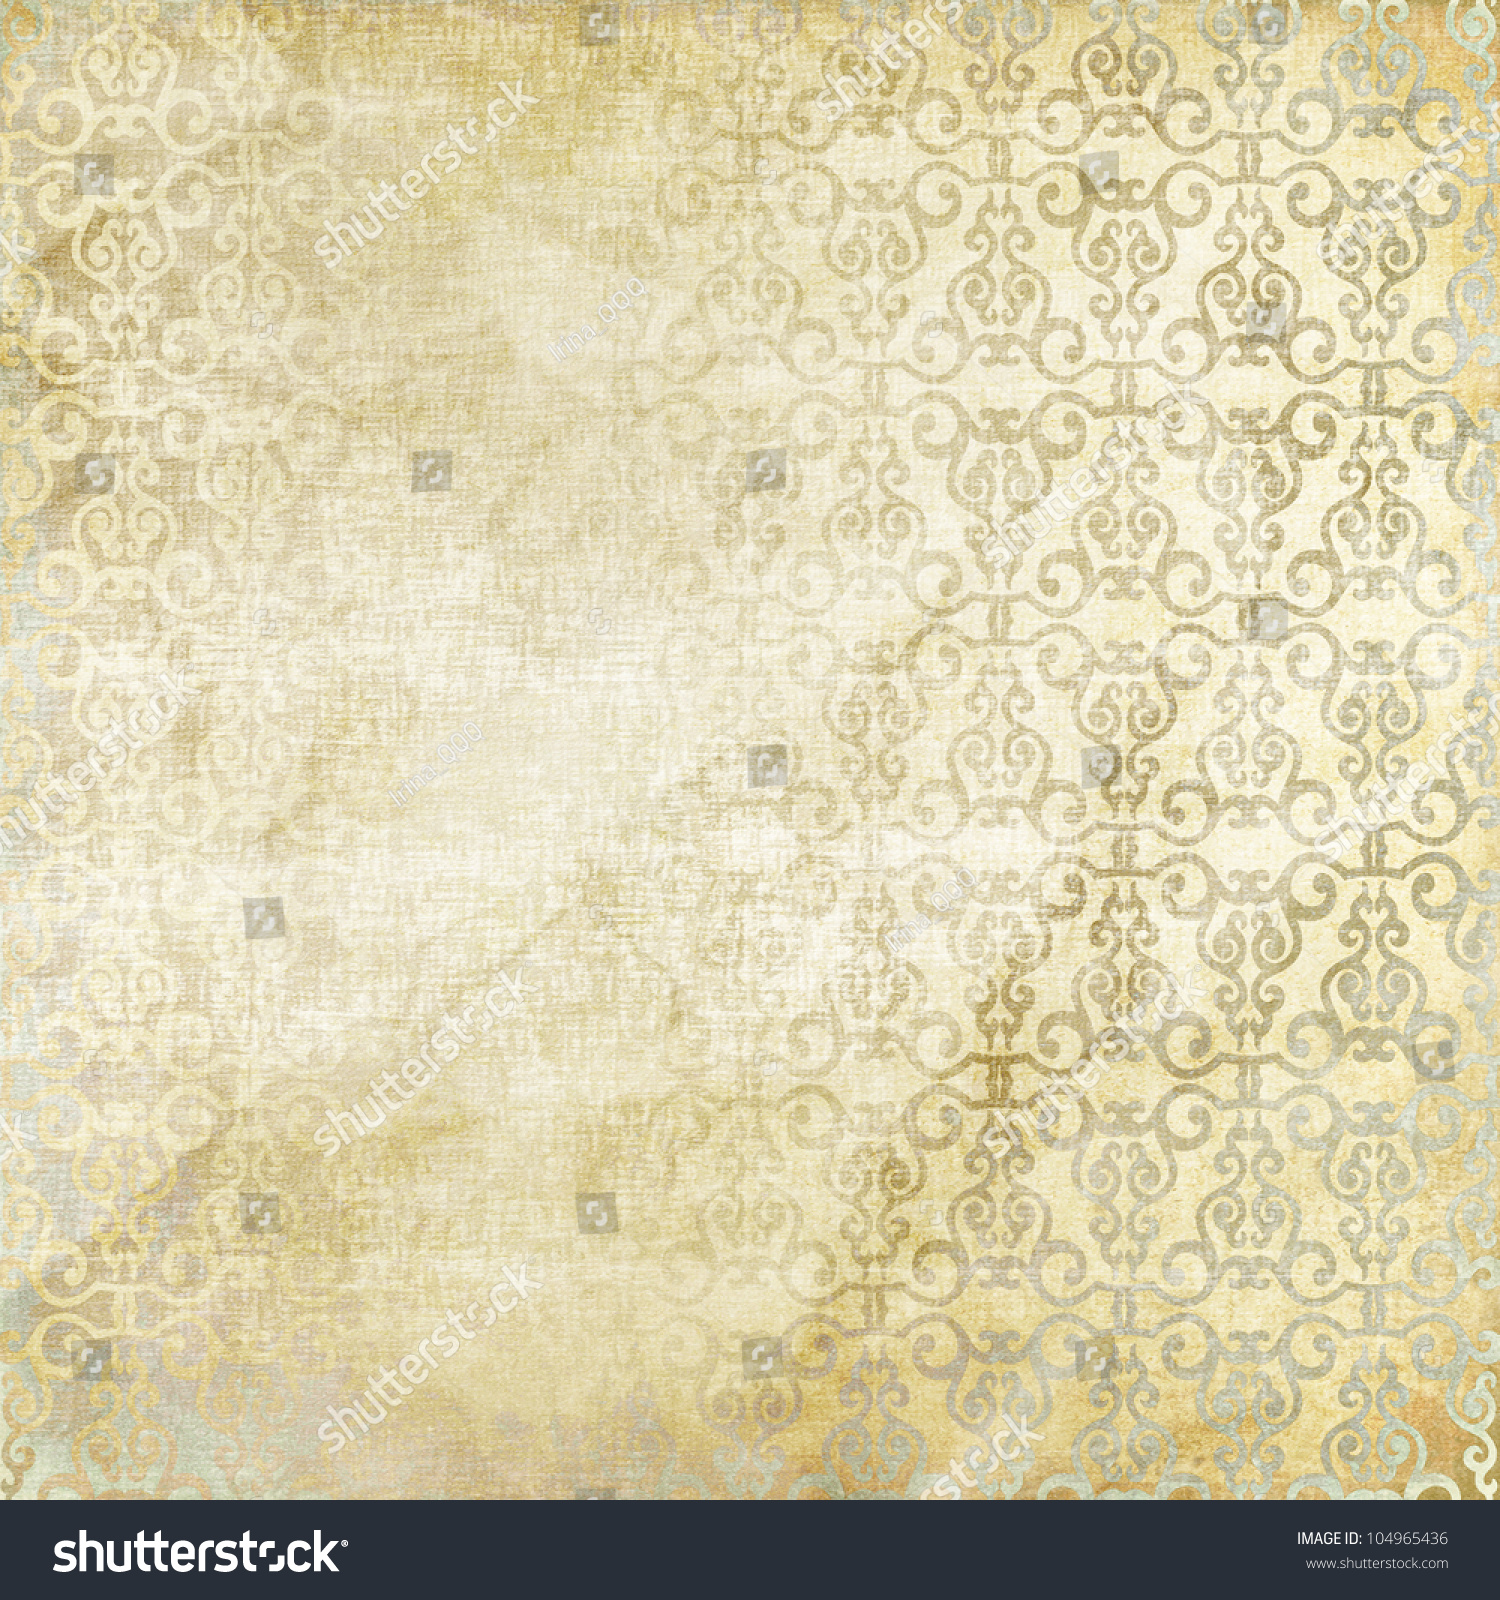 light gold vintage background - photo #5